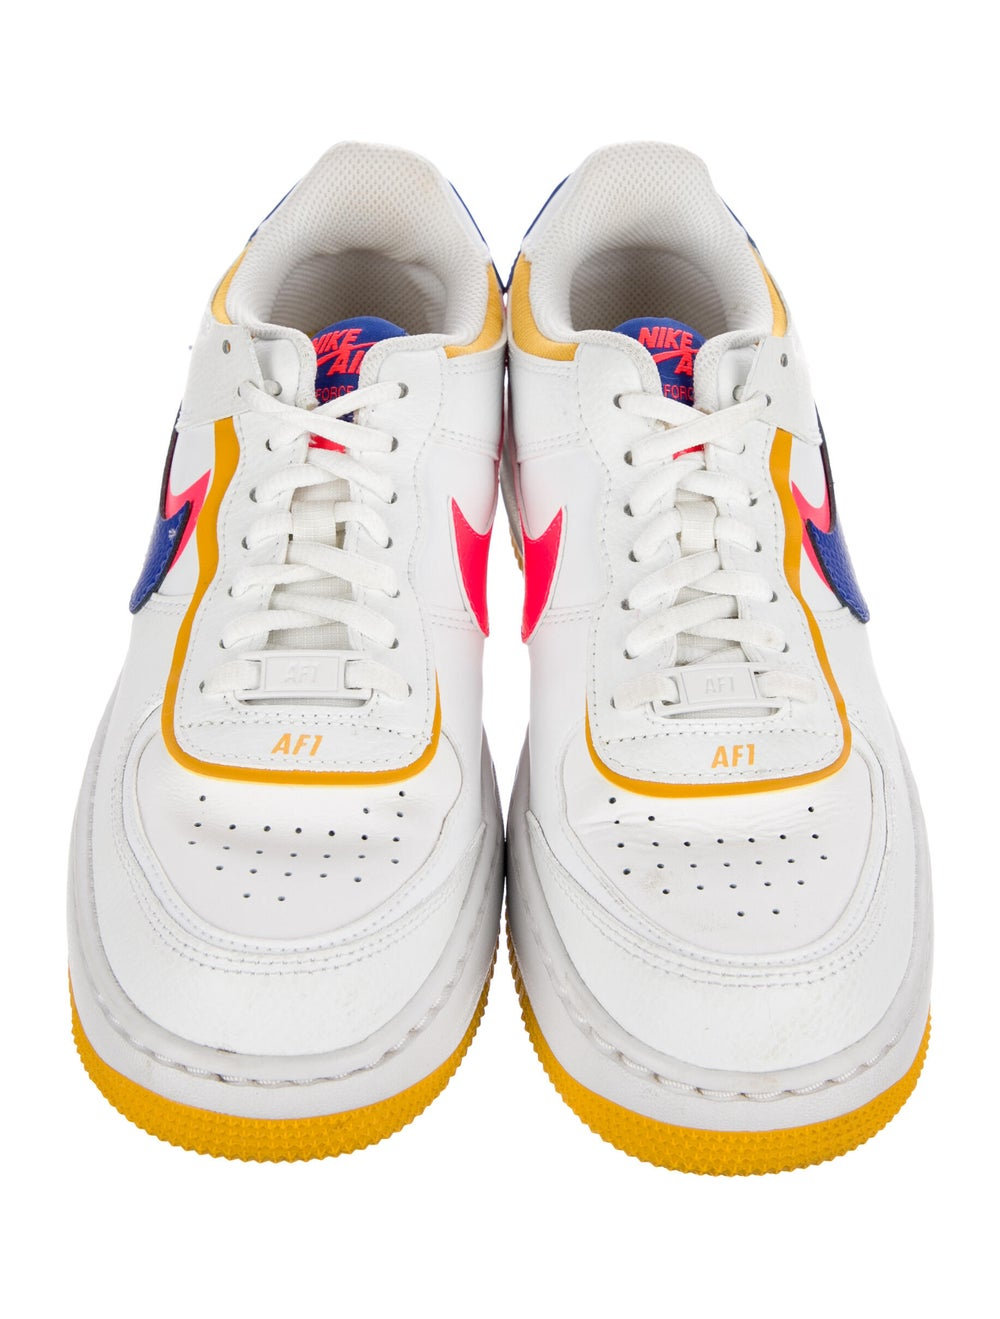 Nike Air Force 1 Sneakers White - image 3